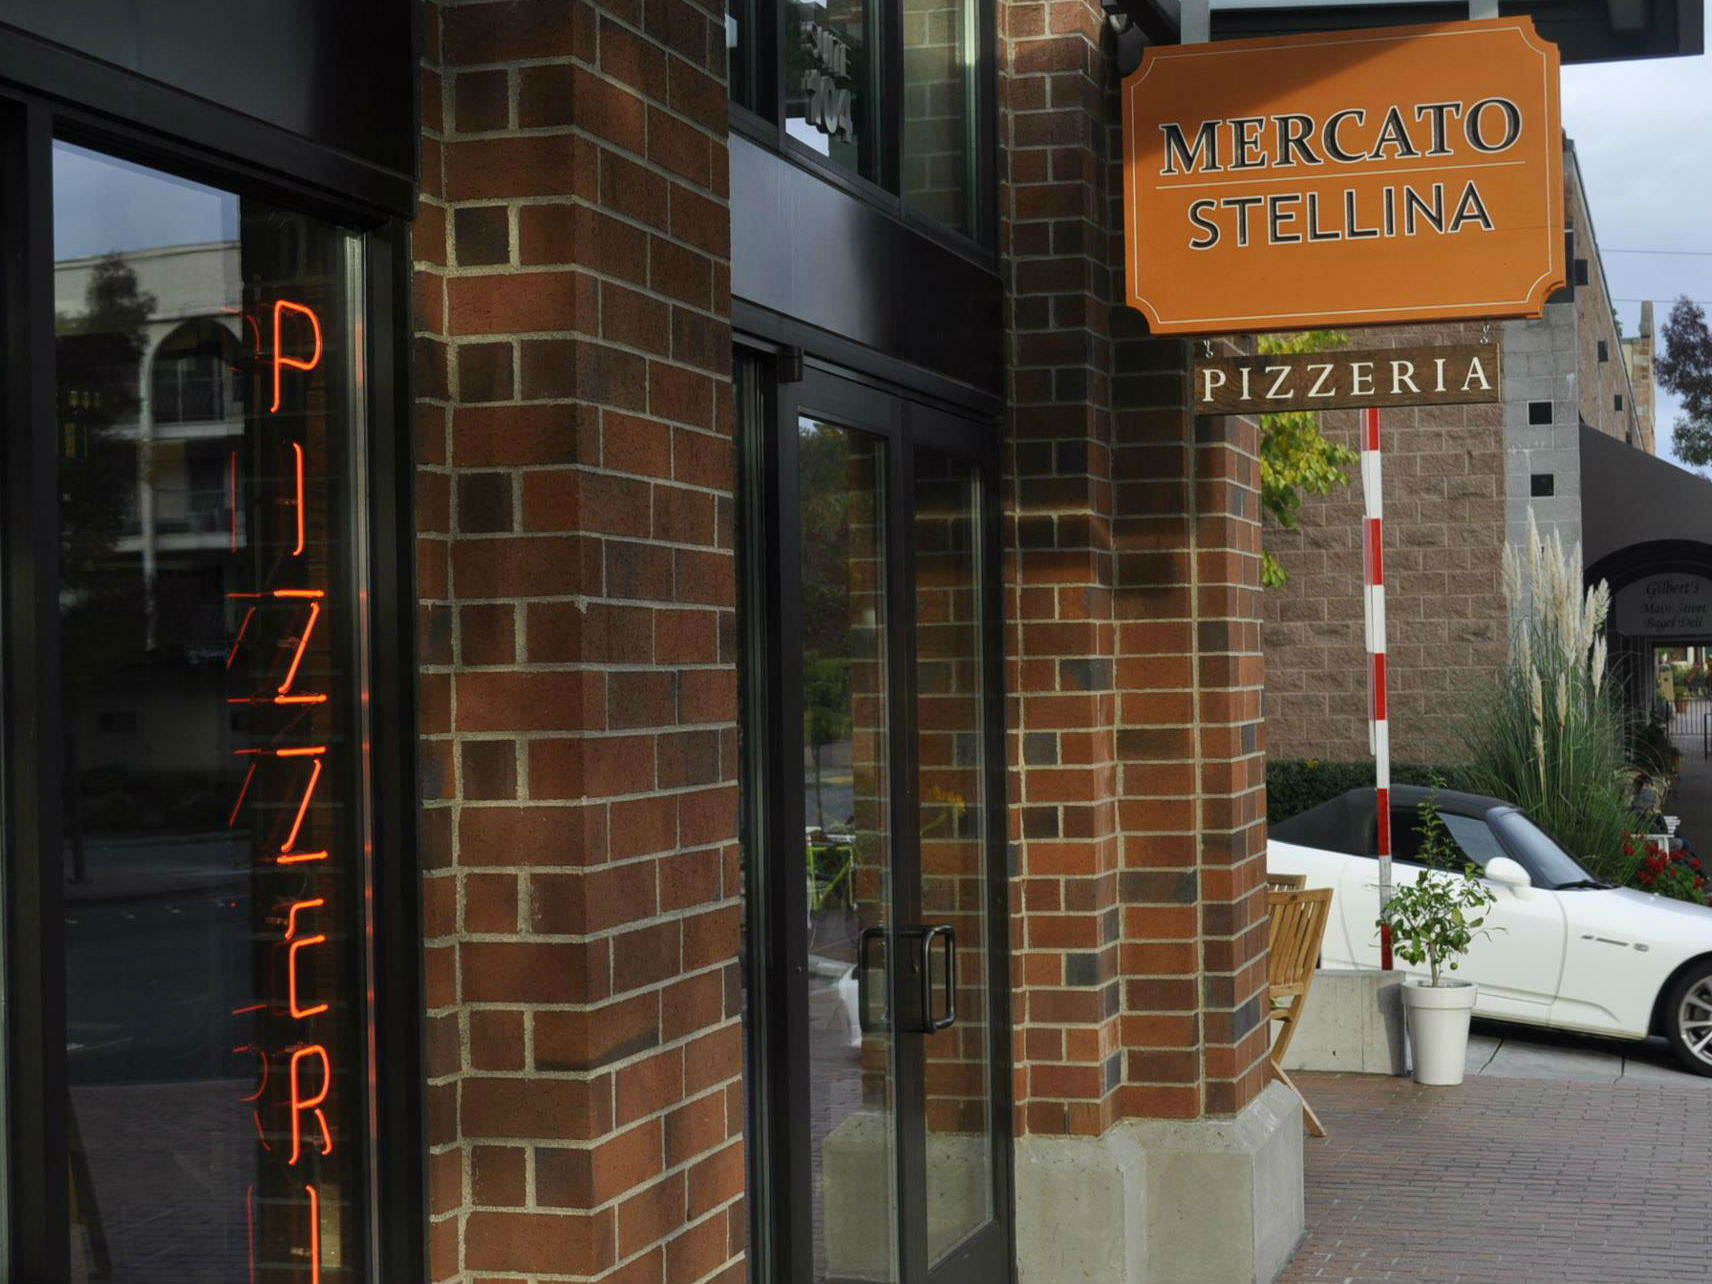 LocalEats Mercato Stellina Pizzeria in Seattle restaurant pic